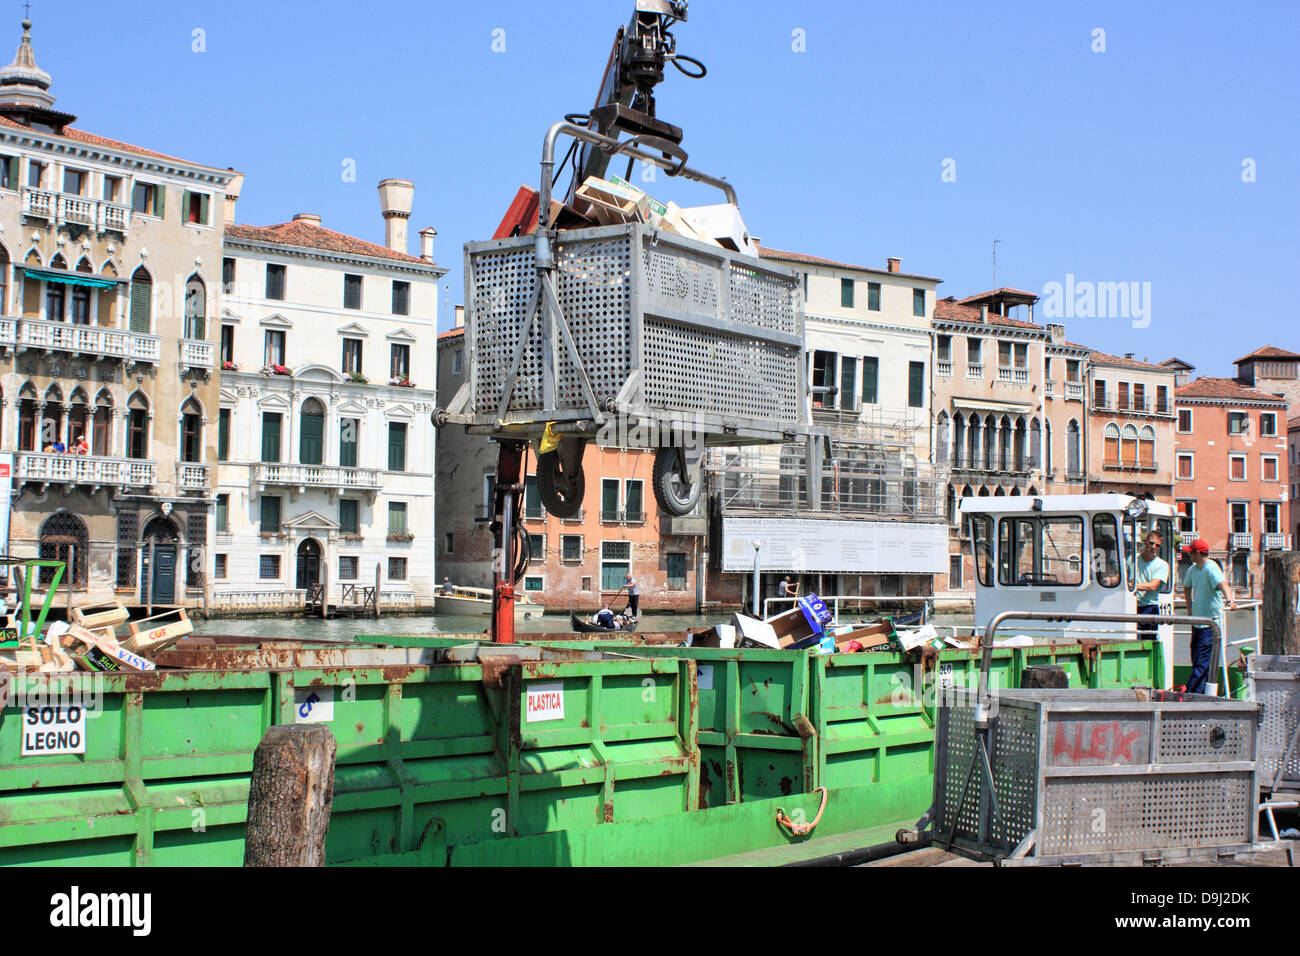 Waste services in Venice, refuse collection by boat after the Rialto fruit market. - Stock Image